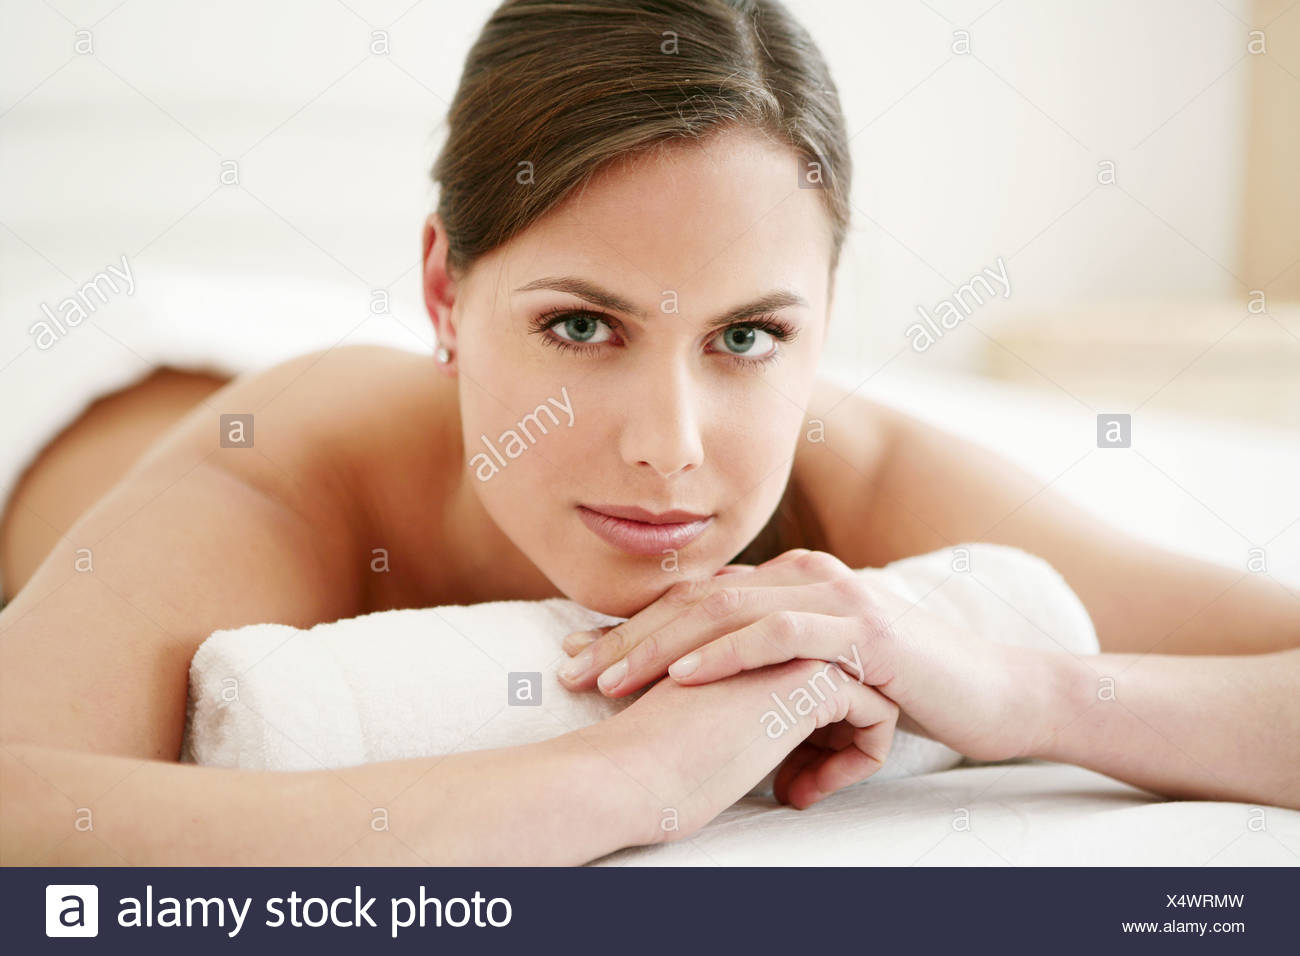 young, woman, lying, tender, gentle, bed, spa, model, adult, caucasian, female, health, beauty, care, 20-25 years, 18-19 years, - Stock Image